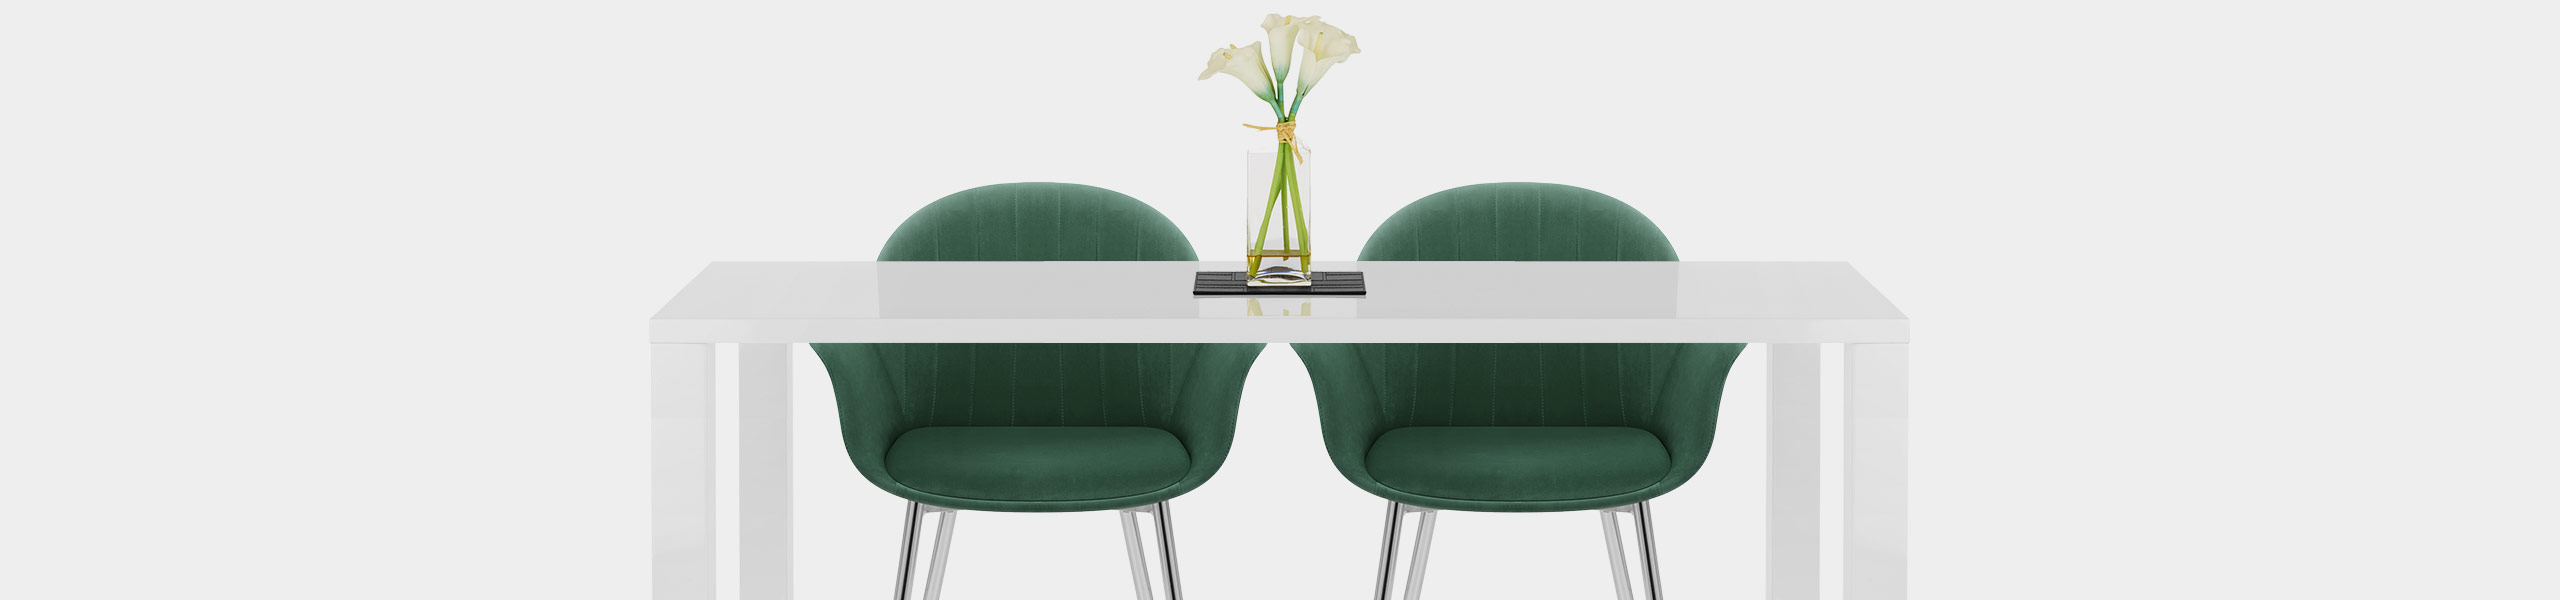 Flare Dining Chair Green Velvet Video Banner